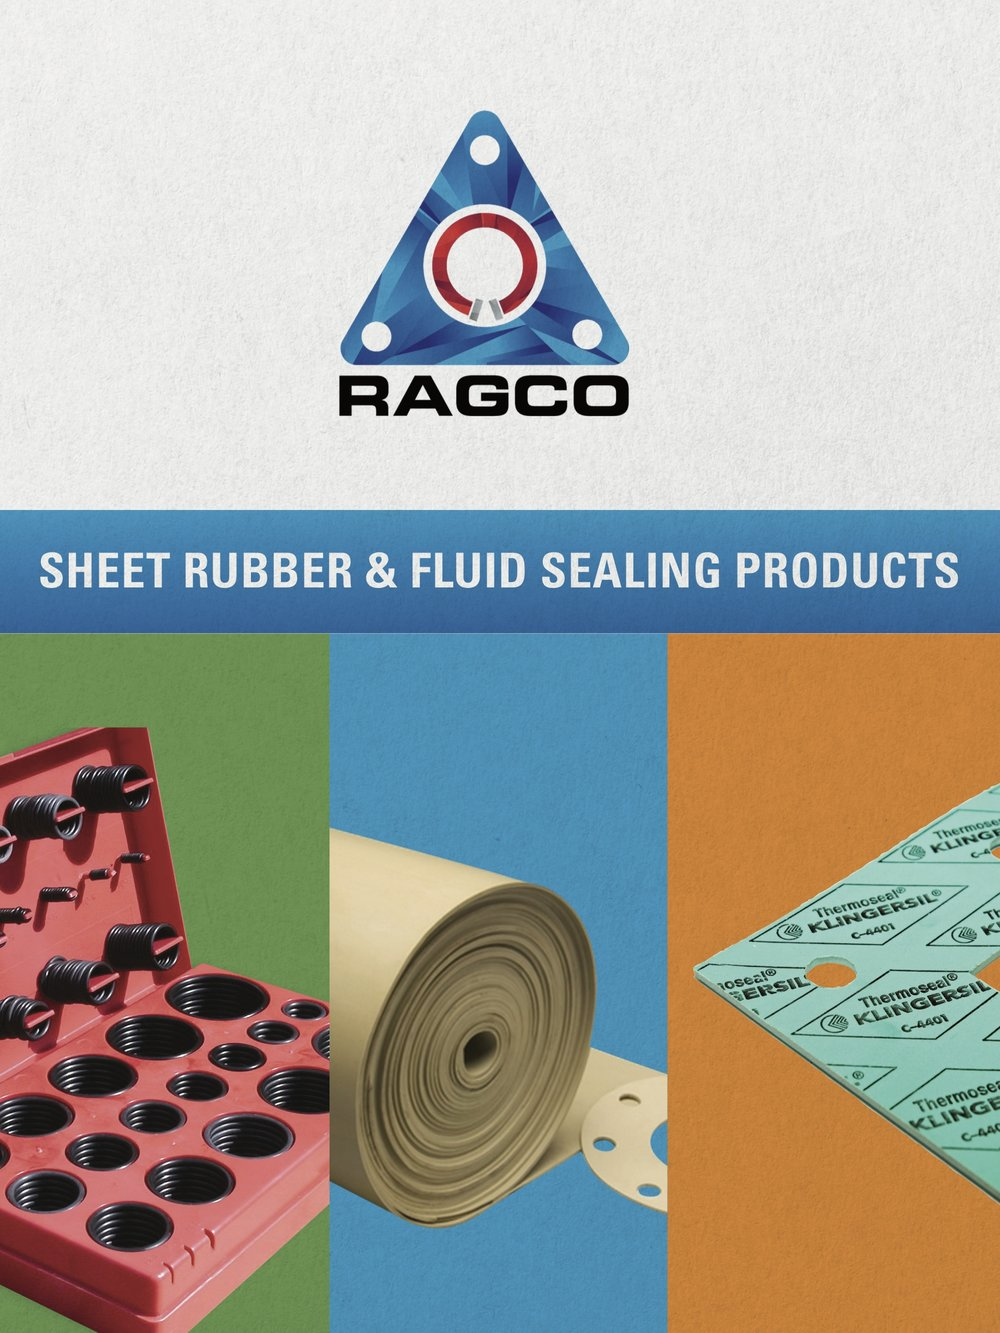 Download & View - SHEET RUBBER & FLUID SEALING PRODUCTS